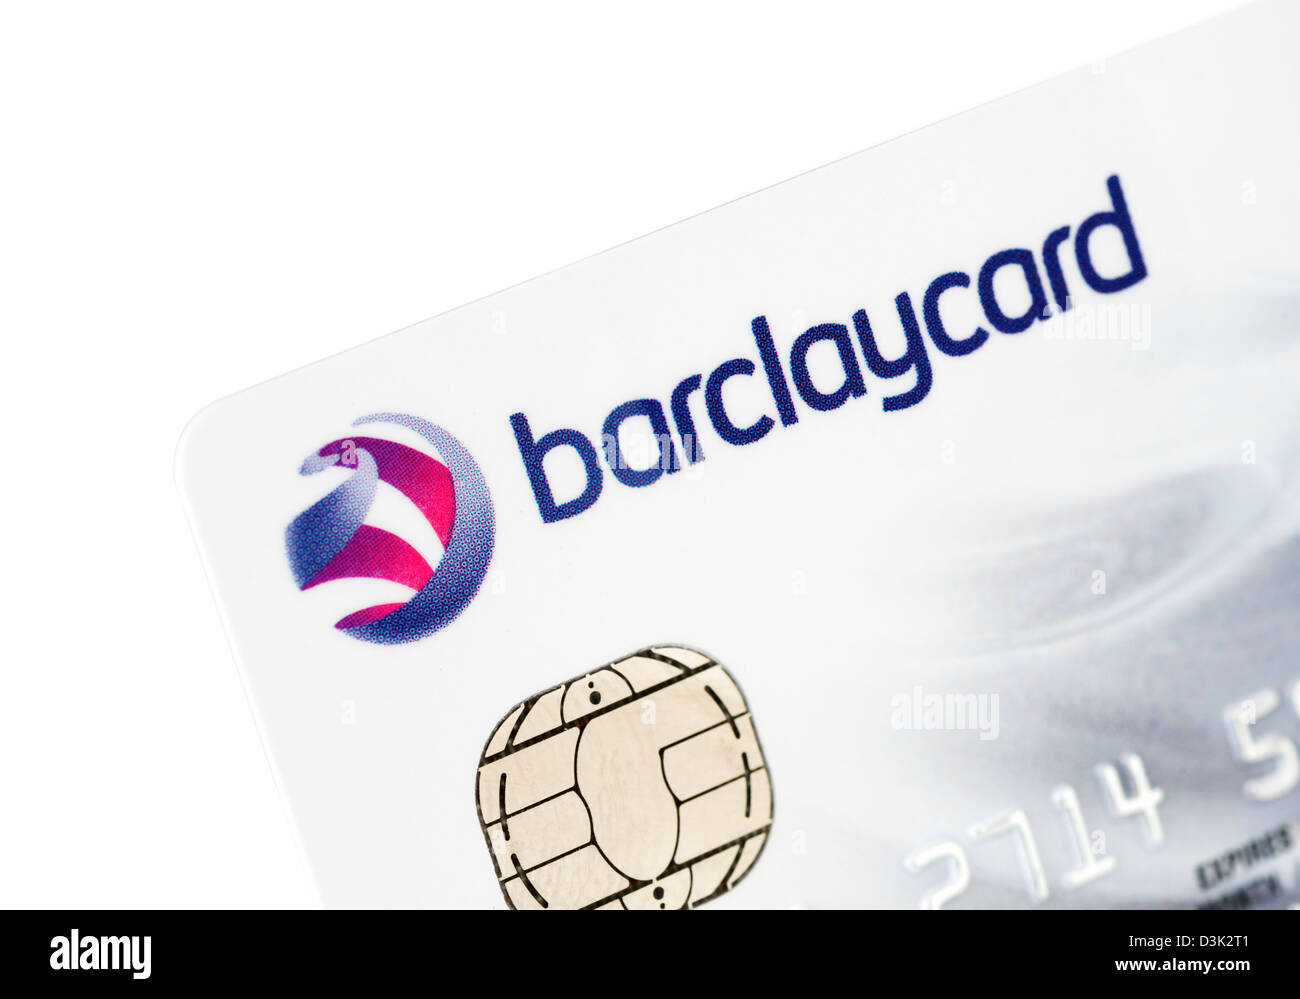 Barclaycard VISA credit card issued in the UK - Stock Image